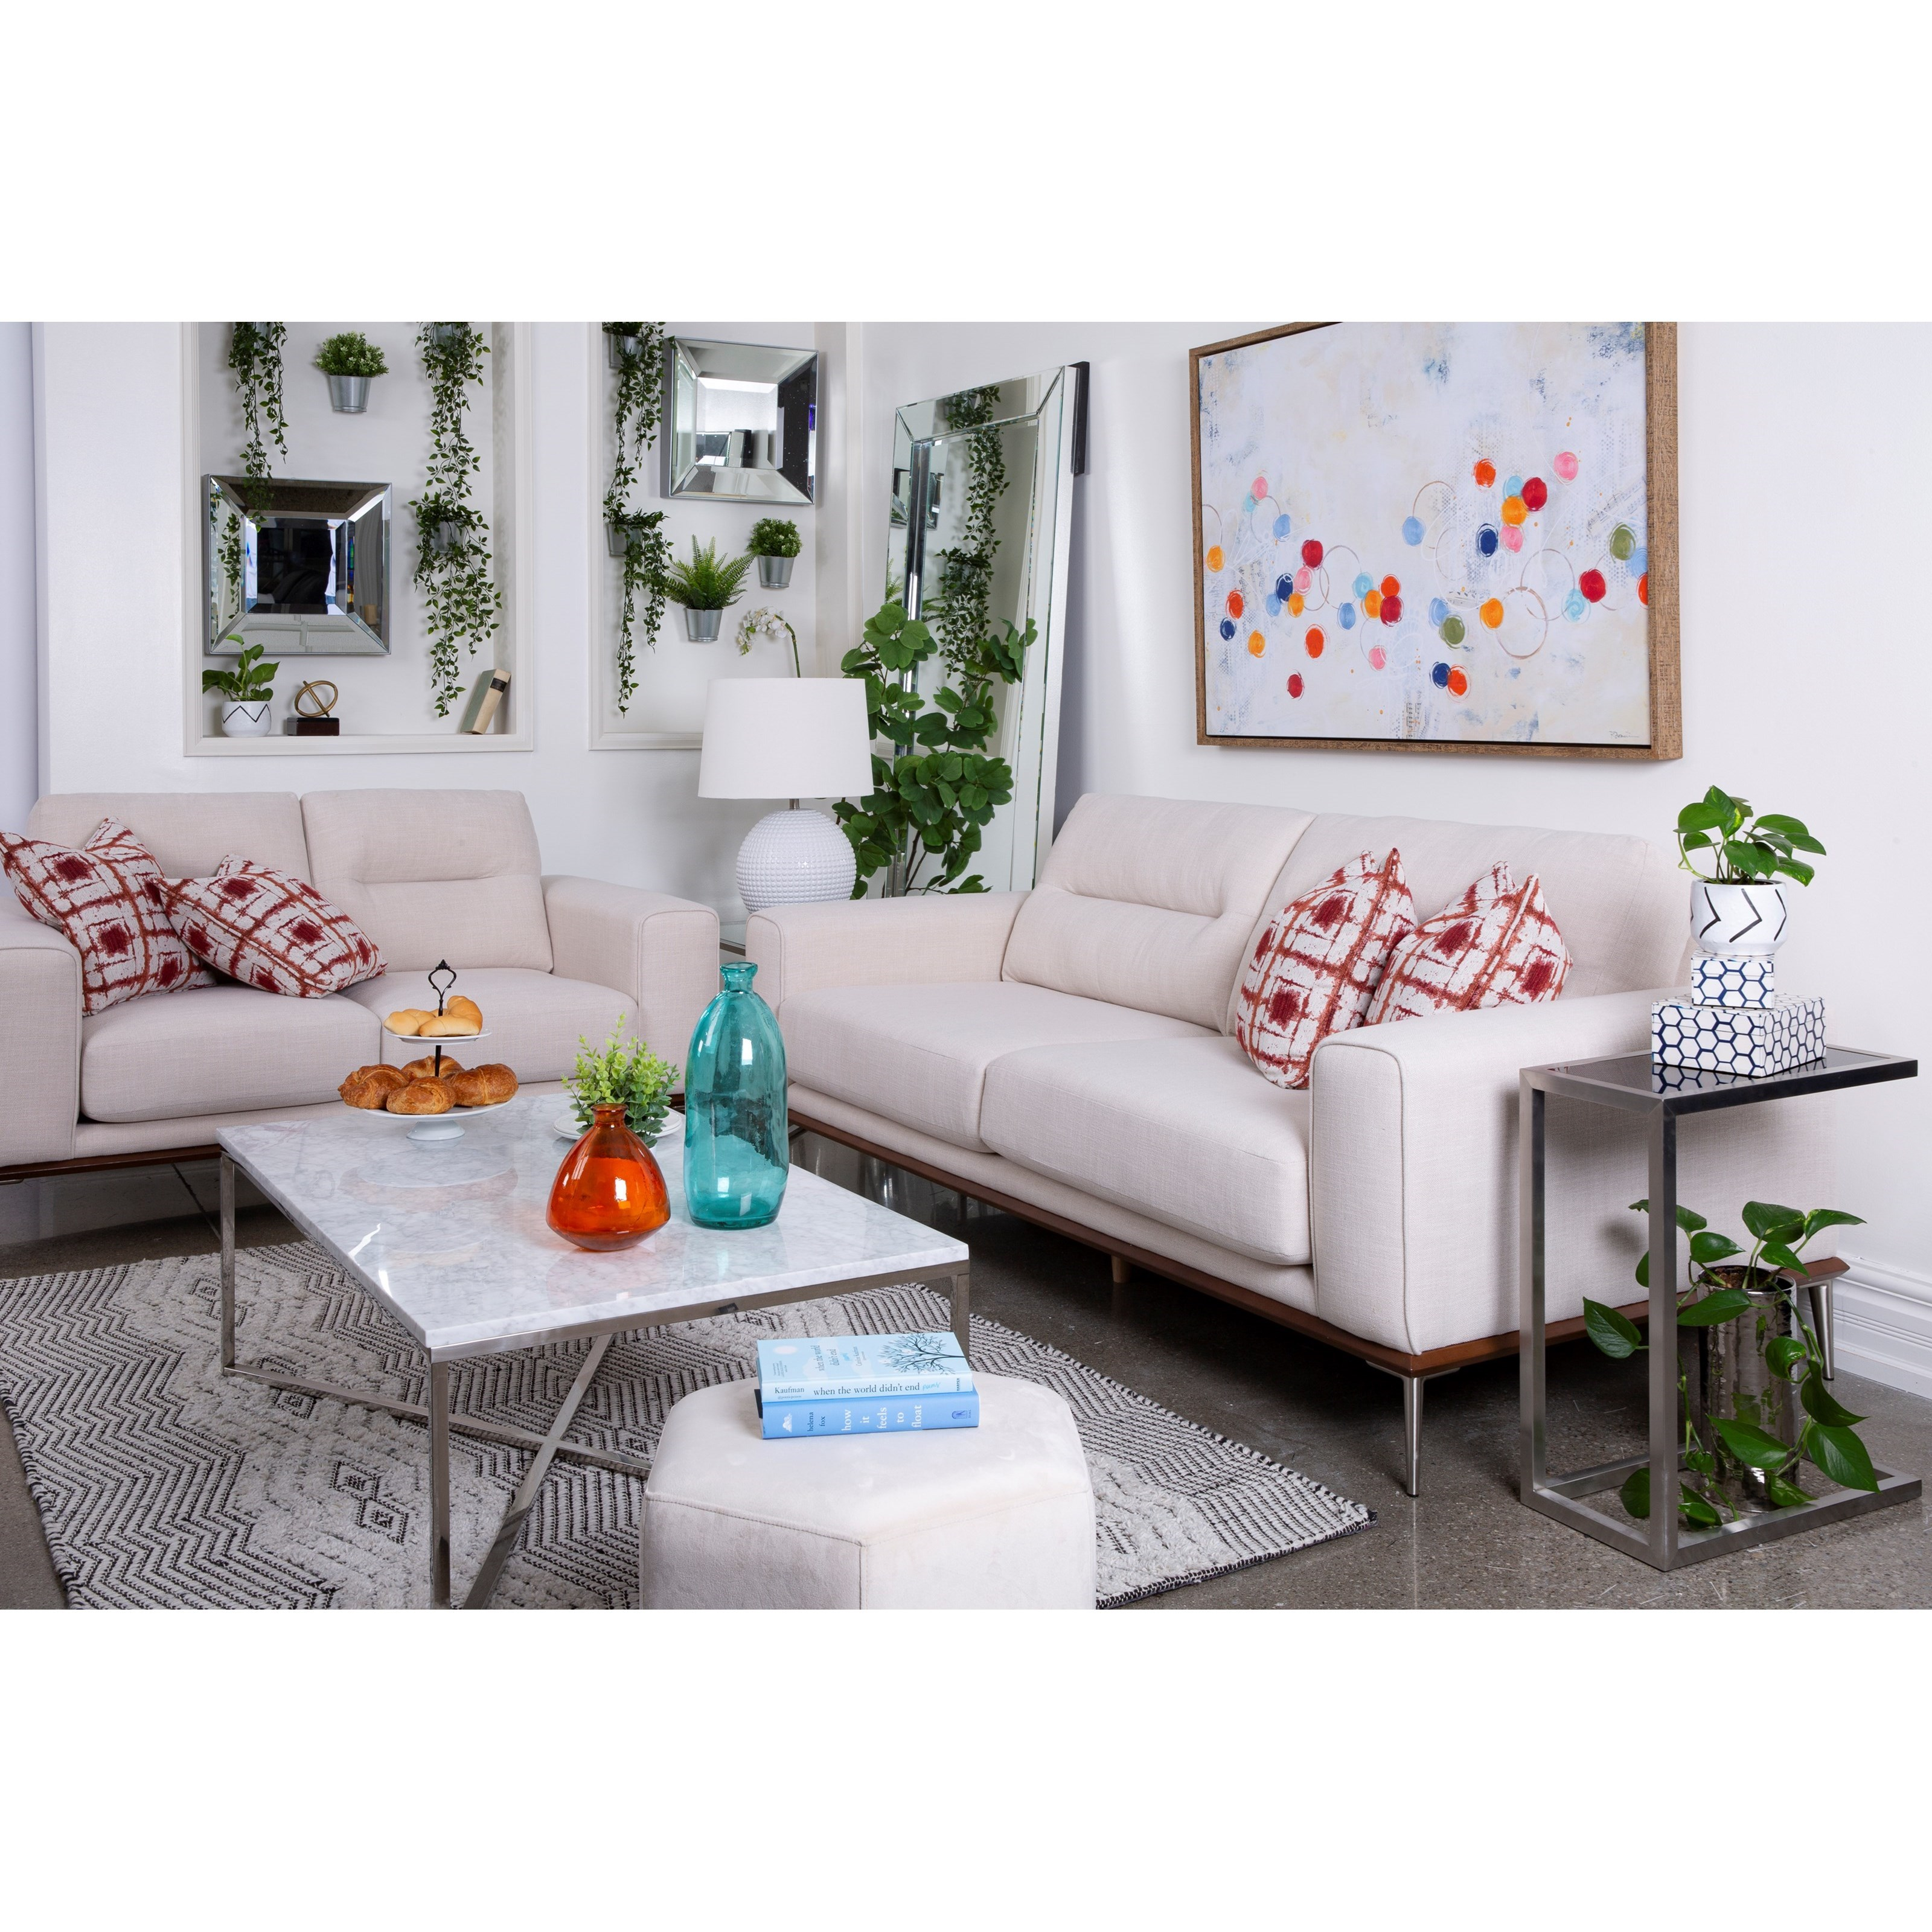 2030 Living Room Group by Decor-Rest at Upper Room Home Furnishings